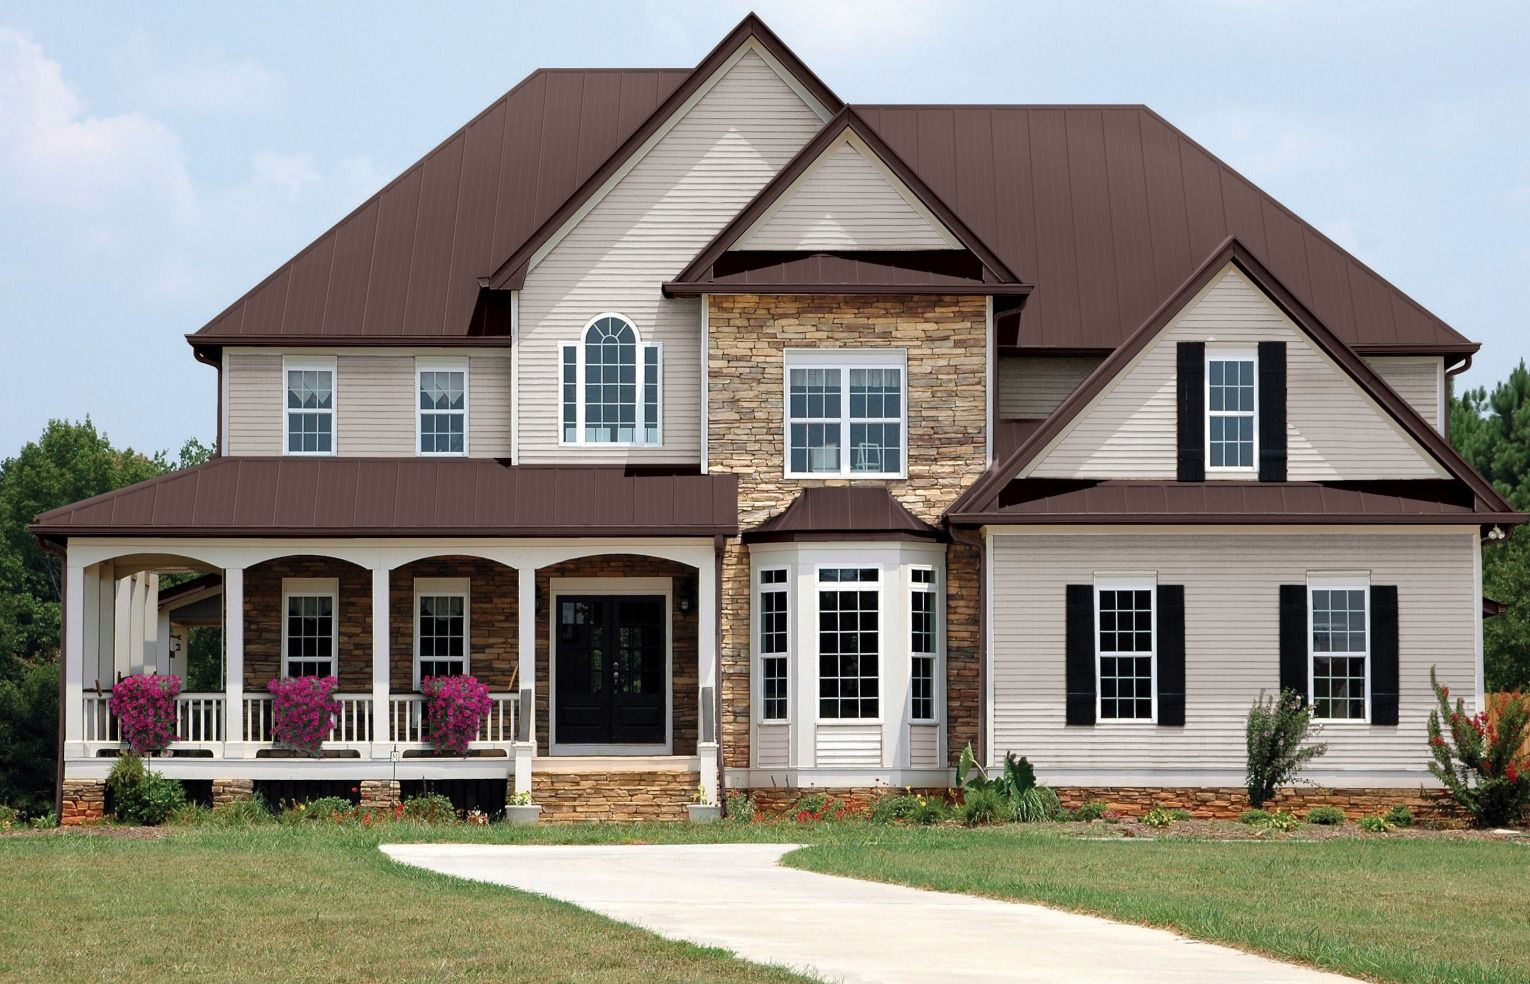 Personalize Your Home With Premium Pro Rib Steel Panel Available In Several Enticing Colors This Roofing Easy Installs Us Steel Roofing Roofing Steel Panels